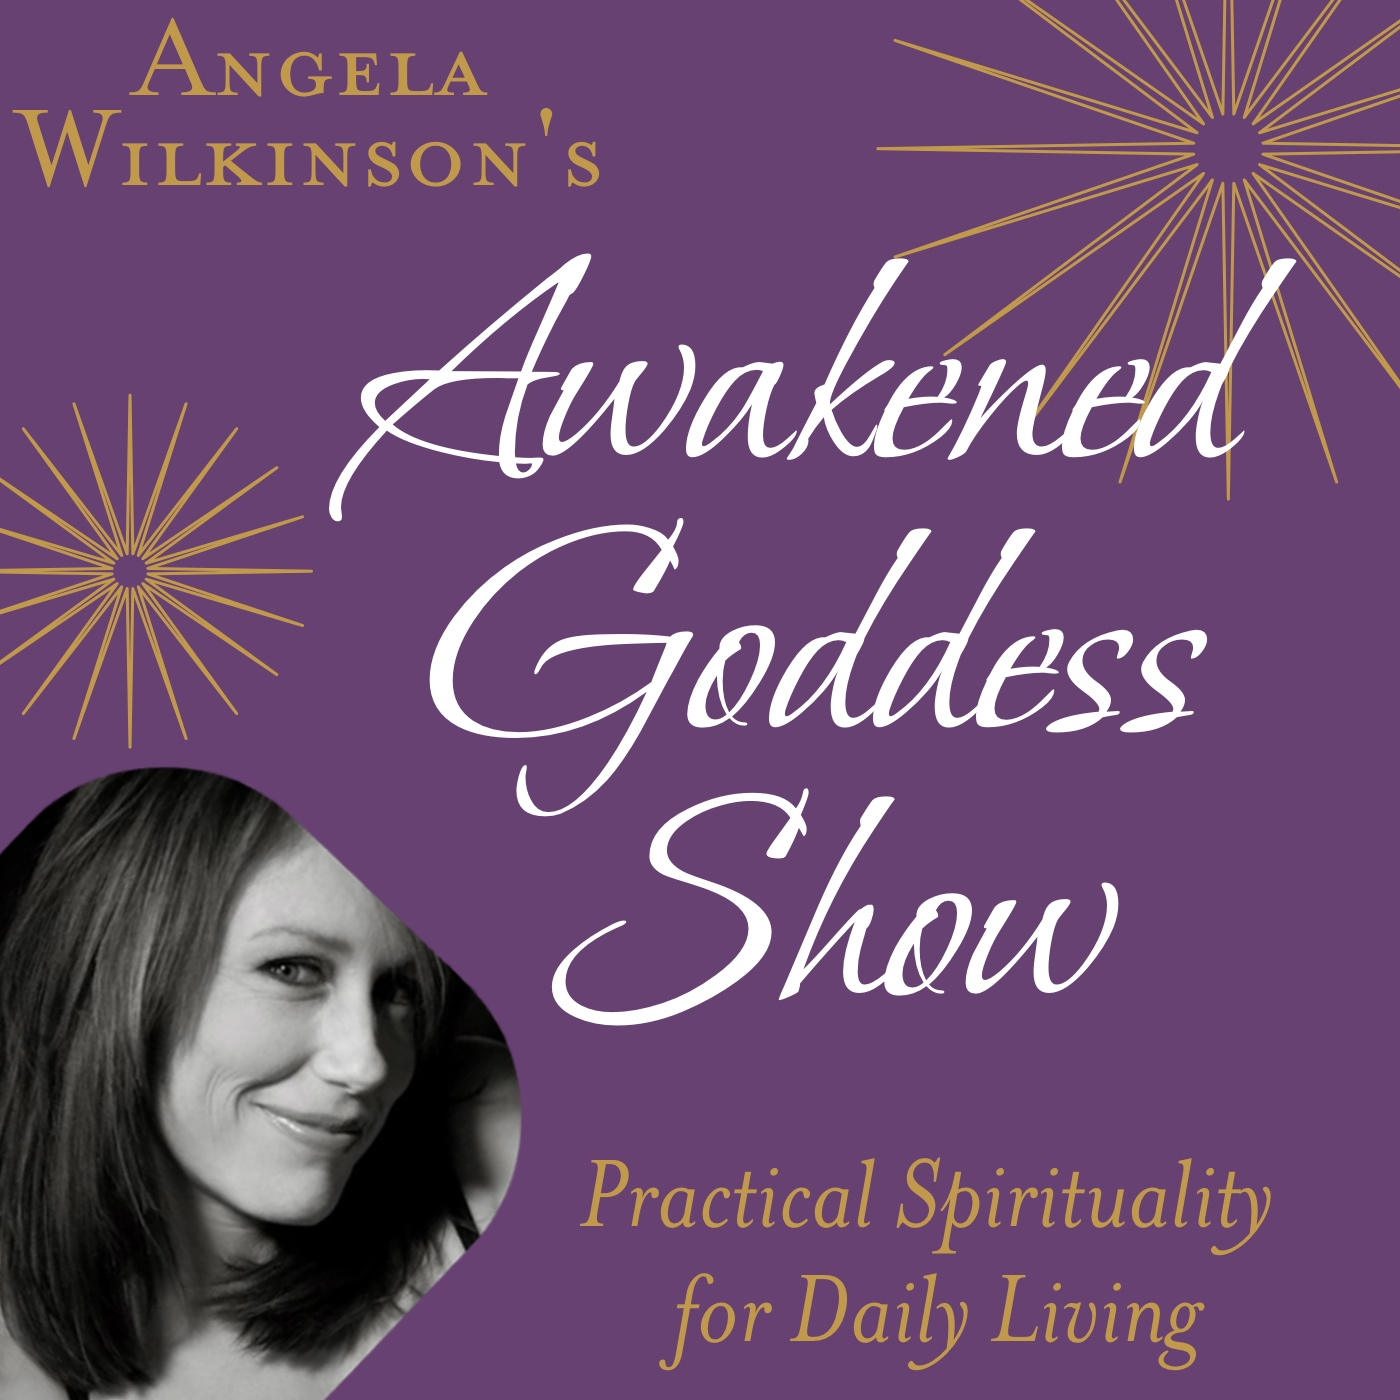 The Awakened Goddess Show: Powerful Conscious Conversations on the Leading Edge show art